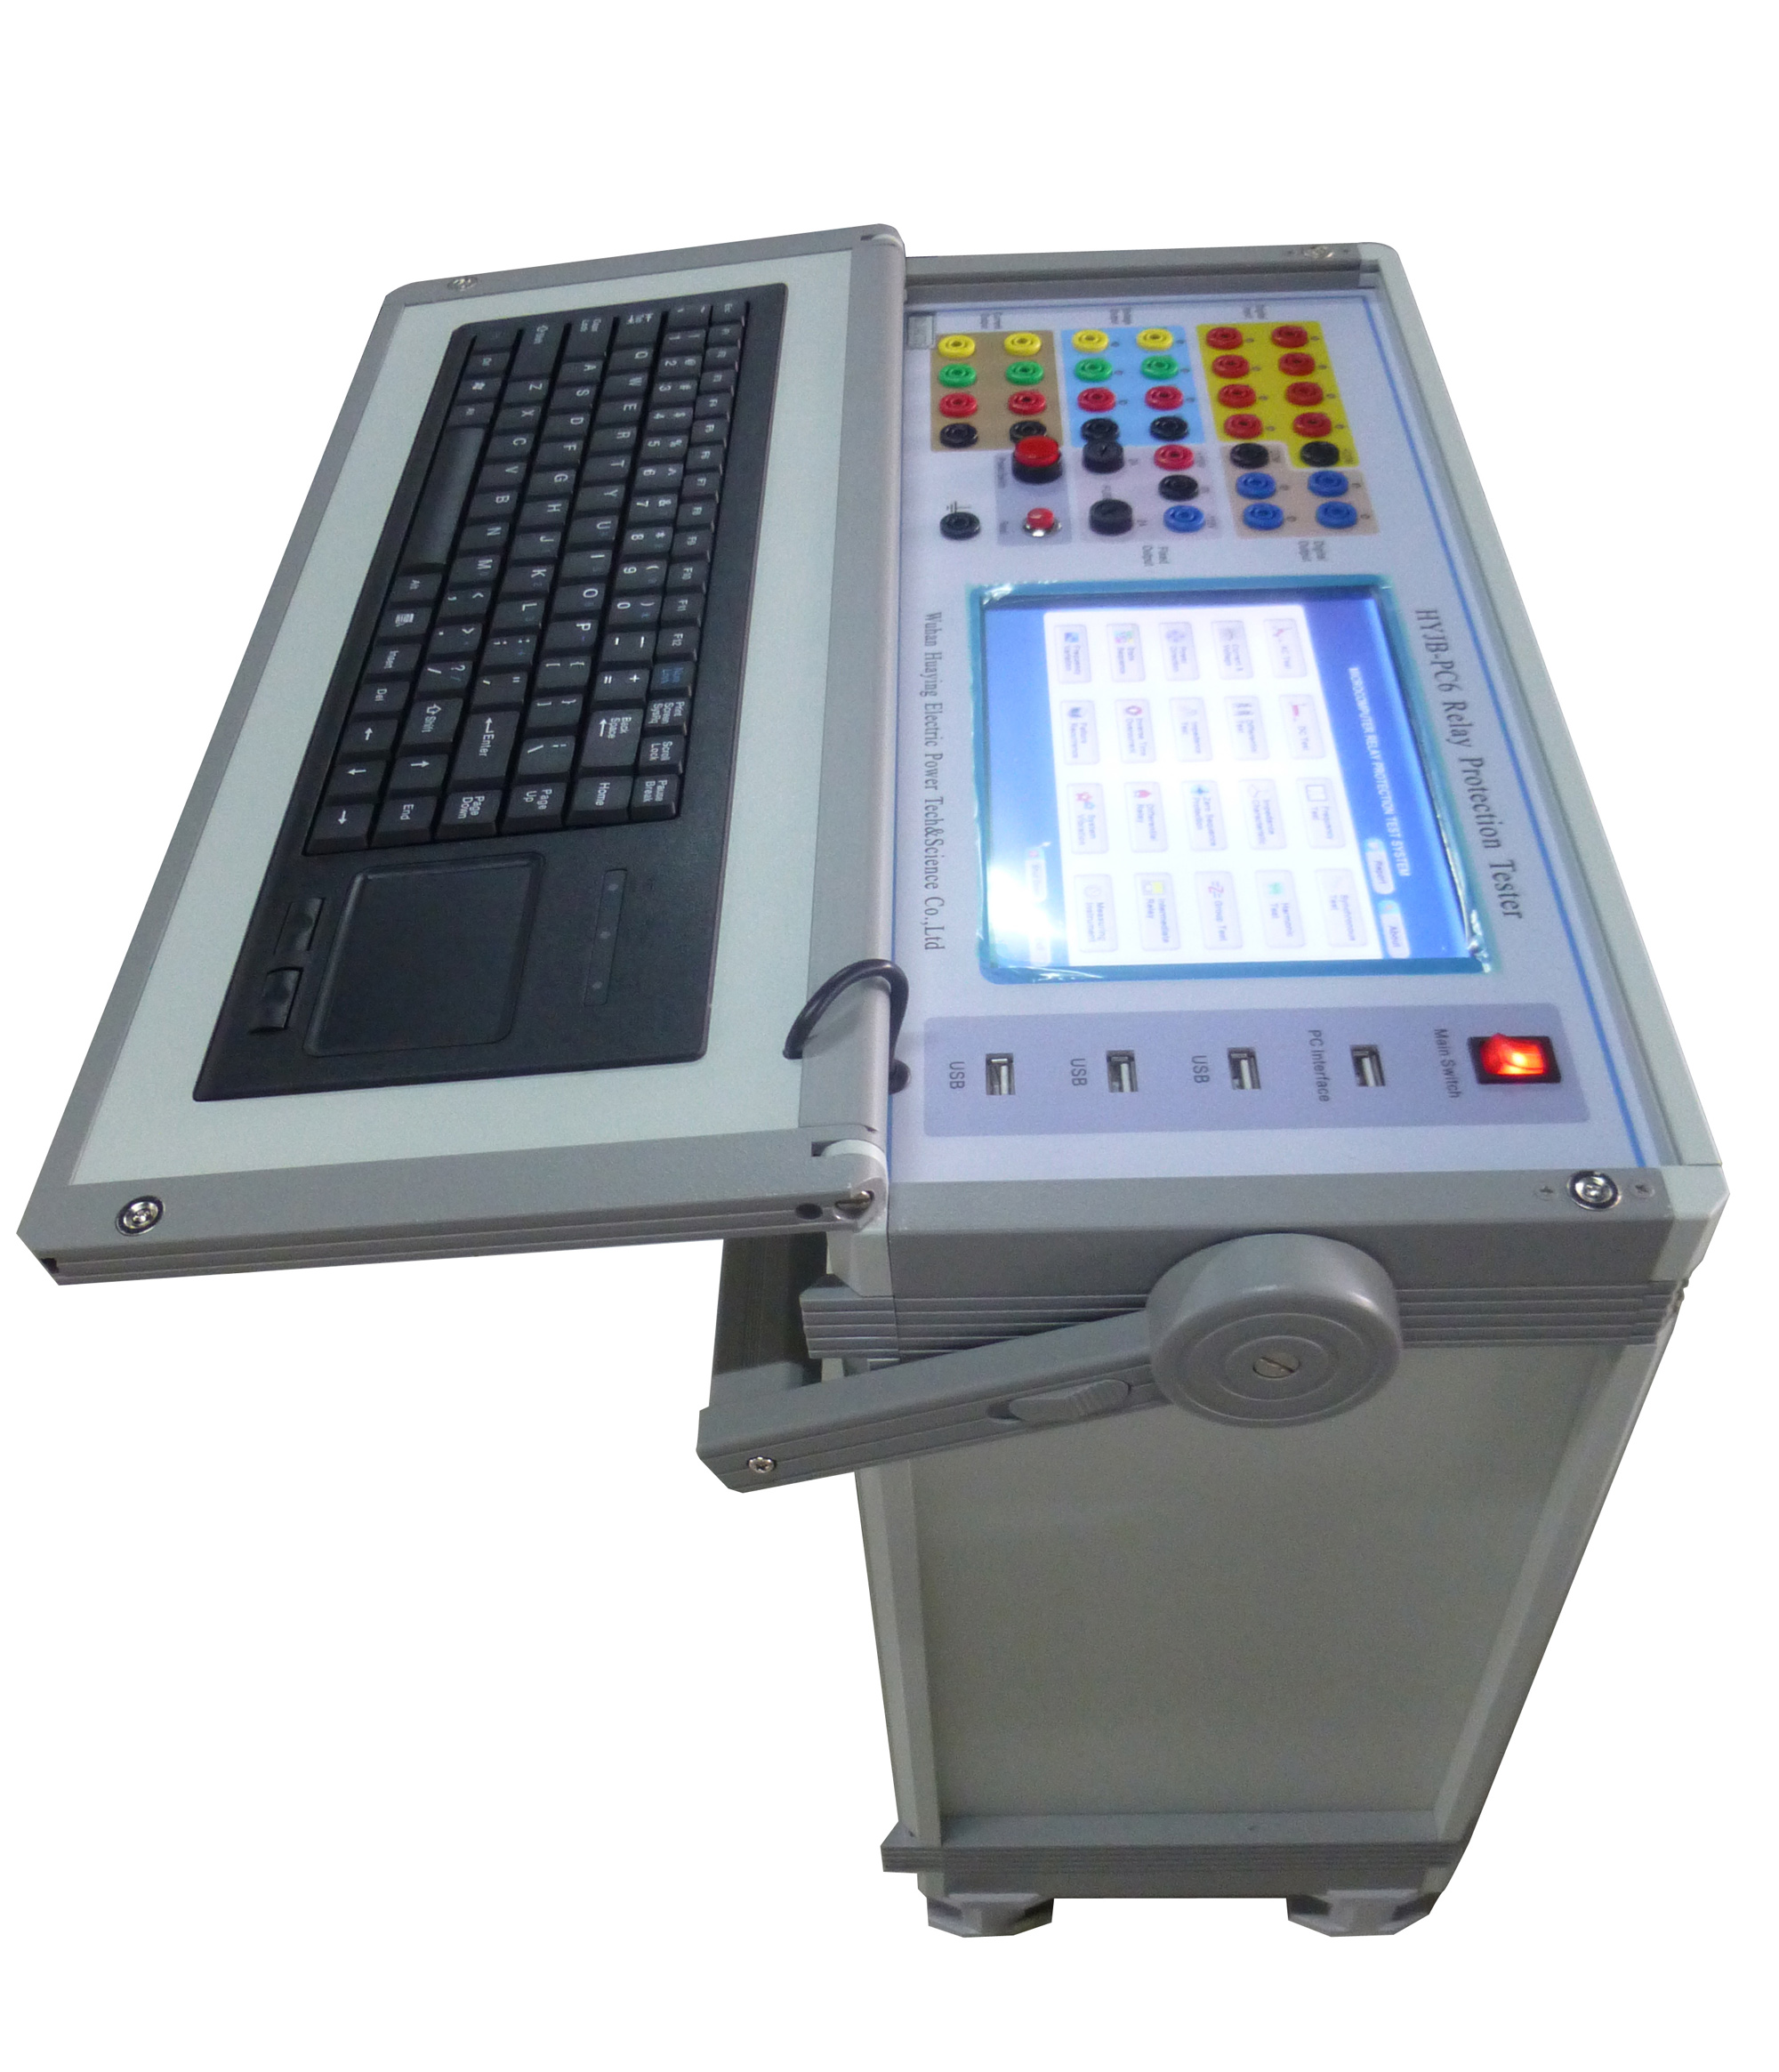 HYJB-PC6 6 Phase Relay Tester